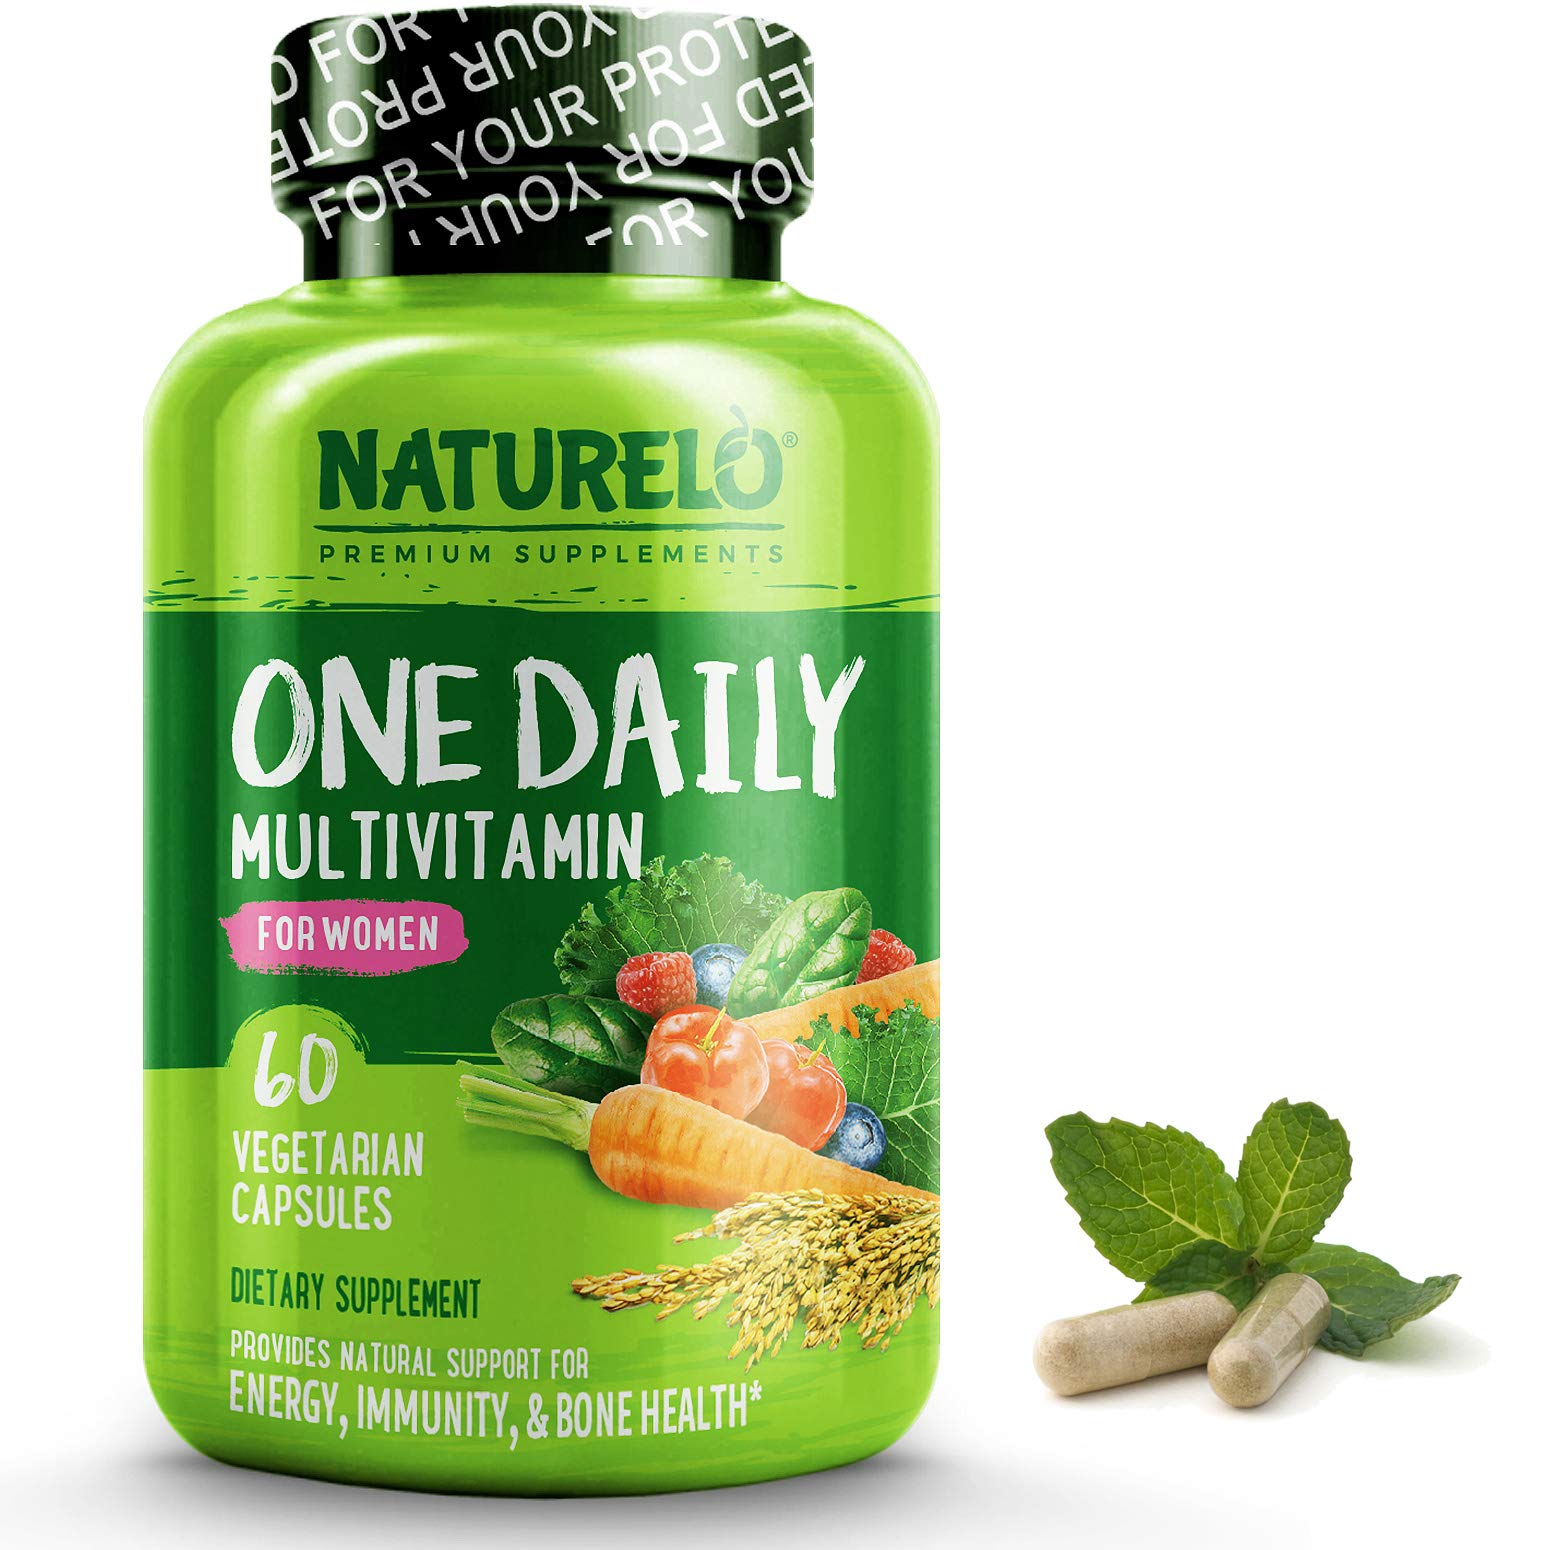 NATURELO One Daily Multivitamin for Women - Best for Hair, Skin, Nails - Natural